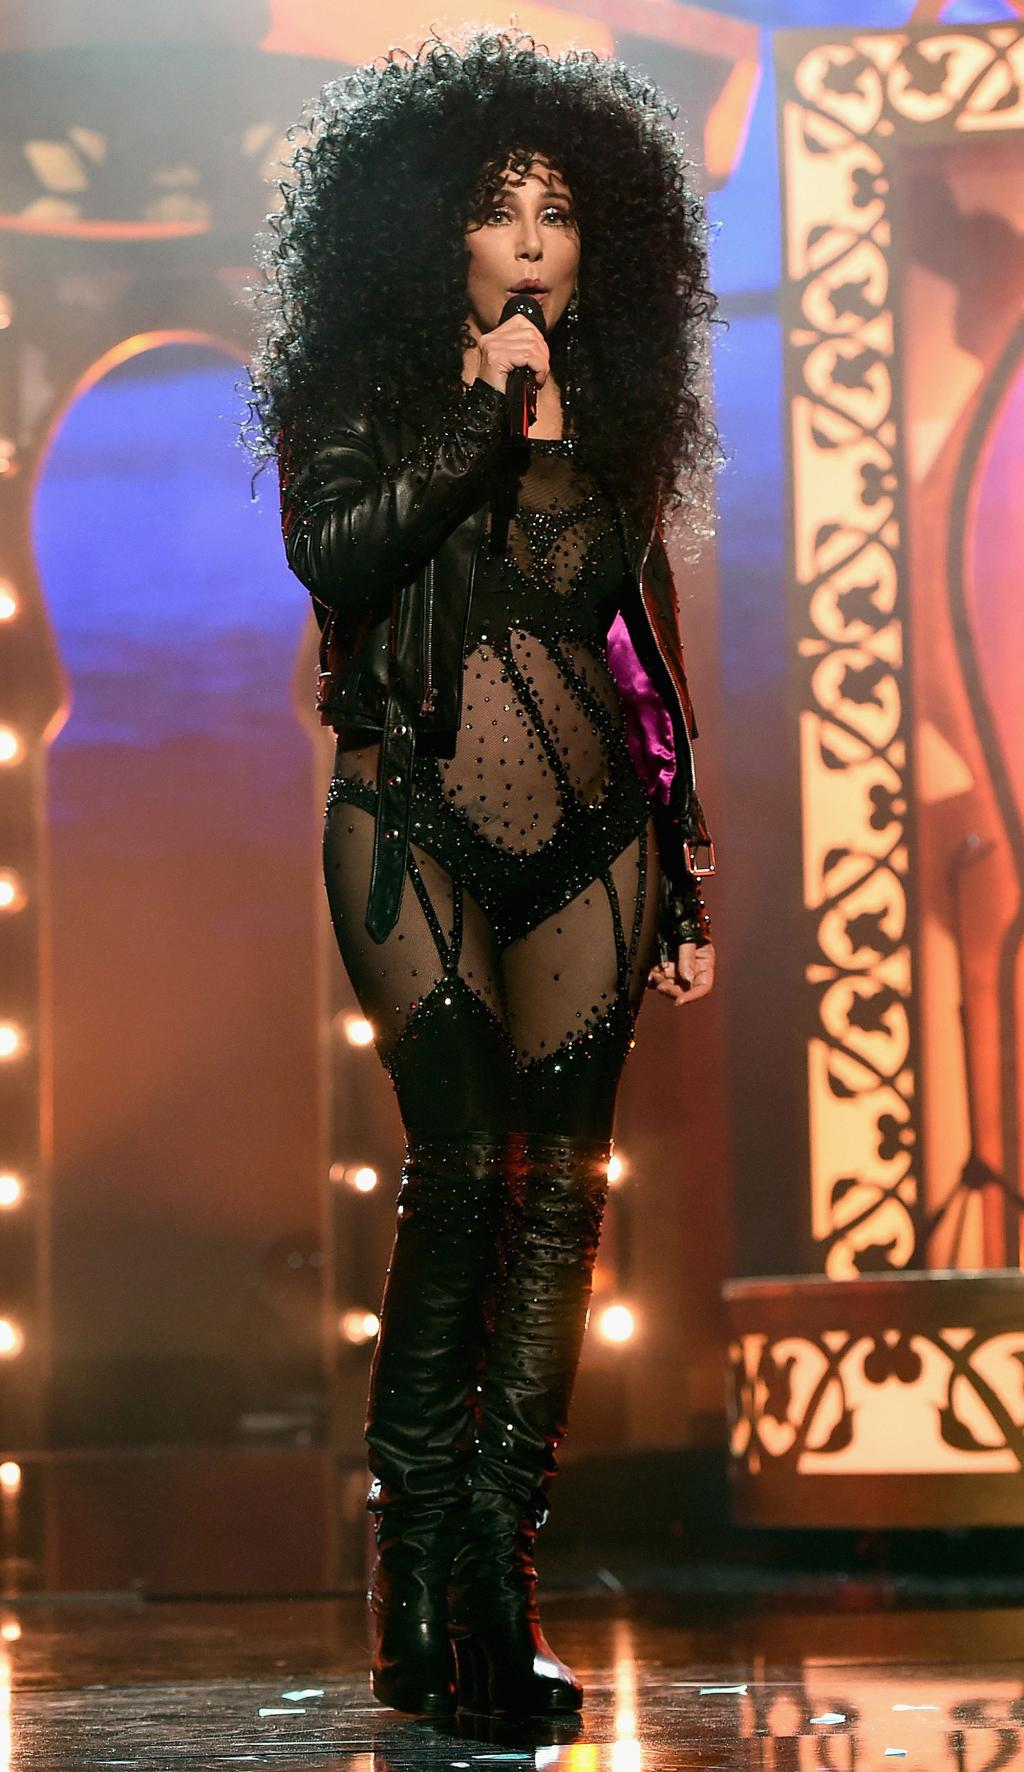 Cher Performs, Accepts Icon Award at the Billboard Music Awards: 'I Wanted to Do What I Do Since I Was 4 Years Old'